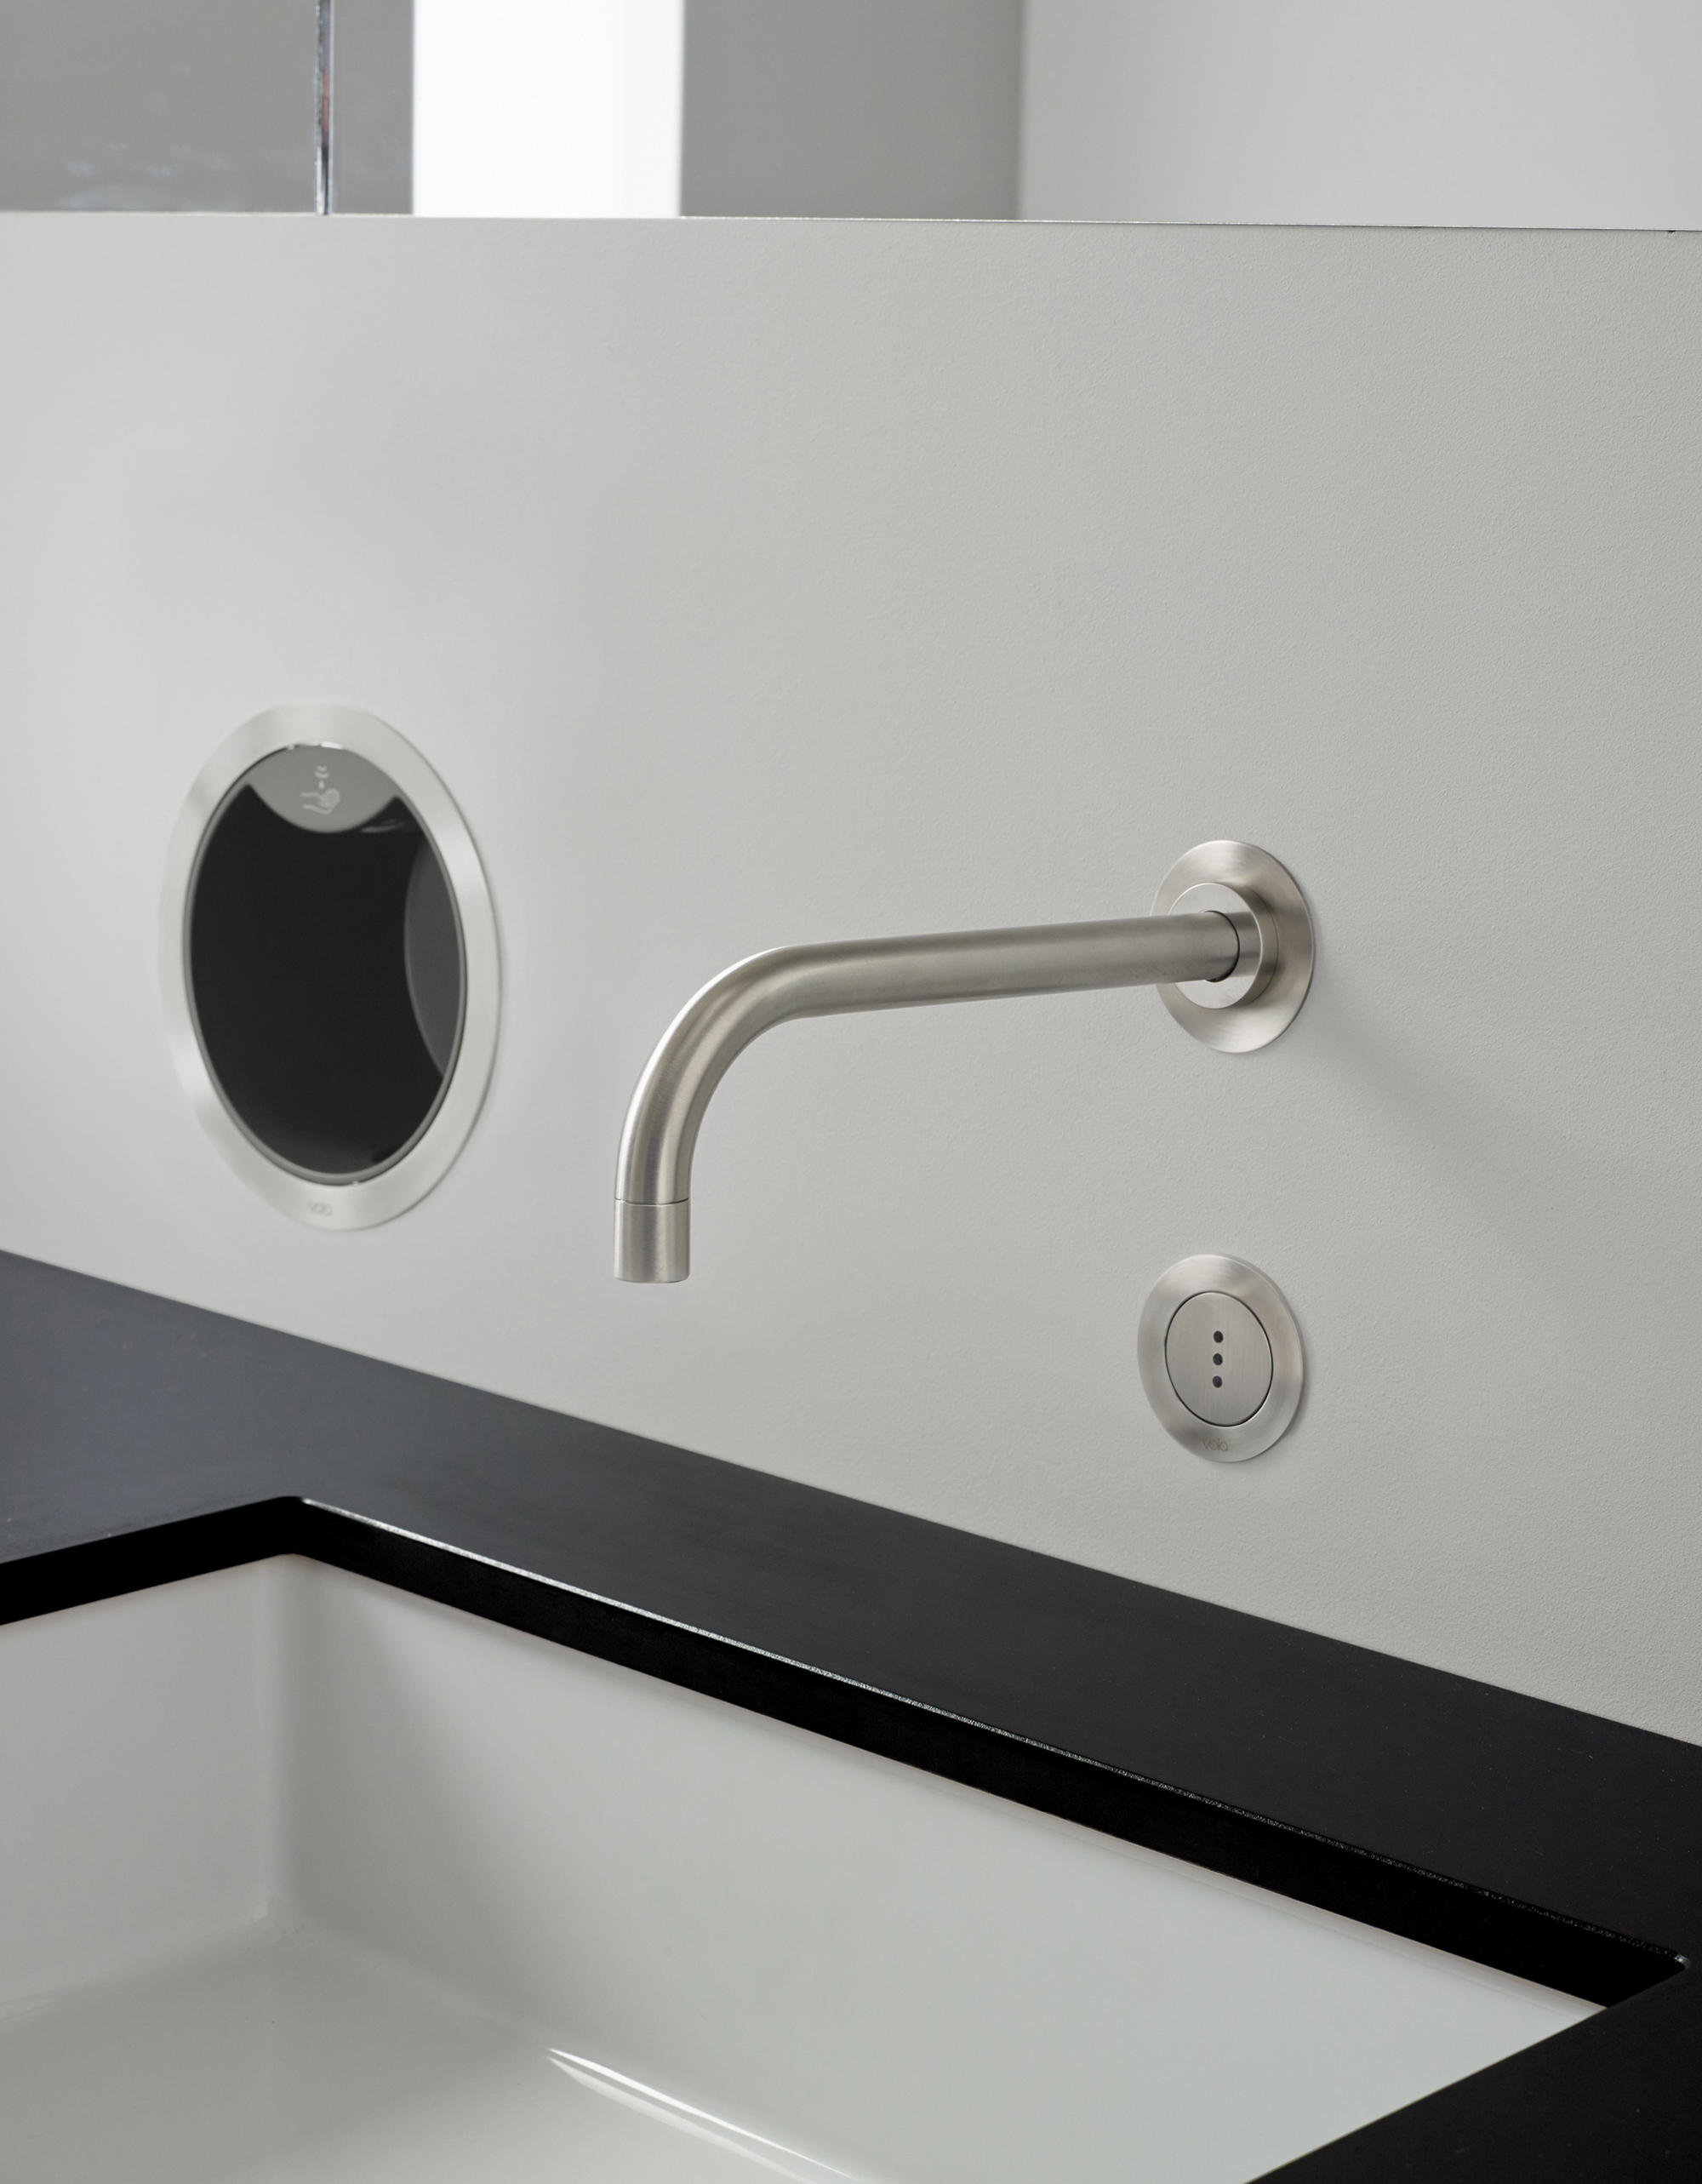 4321 BUILD IN BASIN MIXER Wash basin taps from VOLA